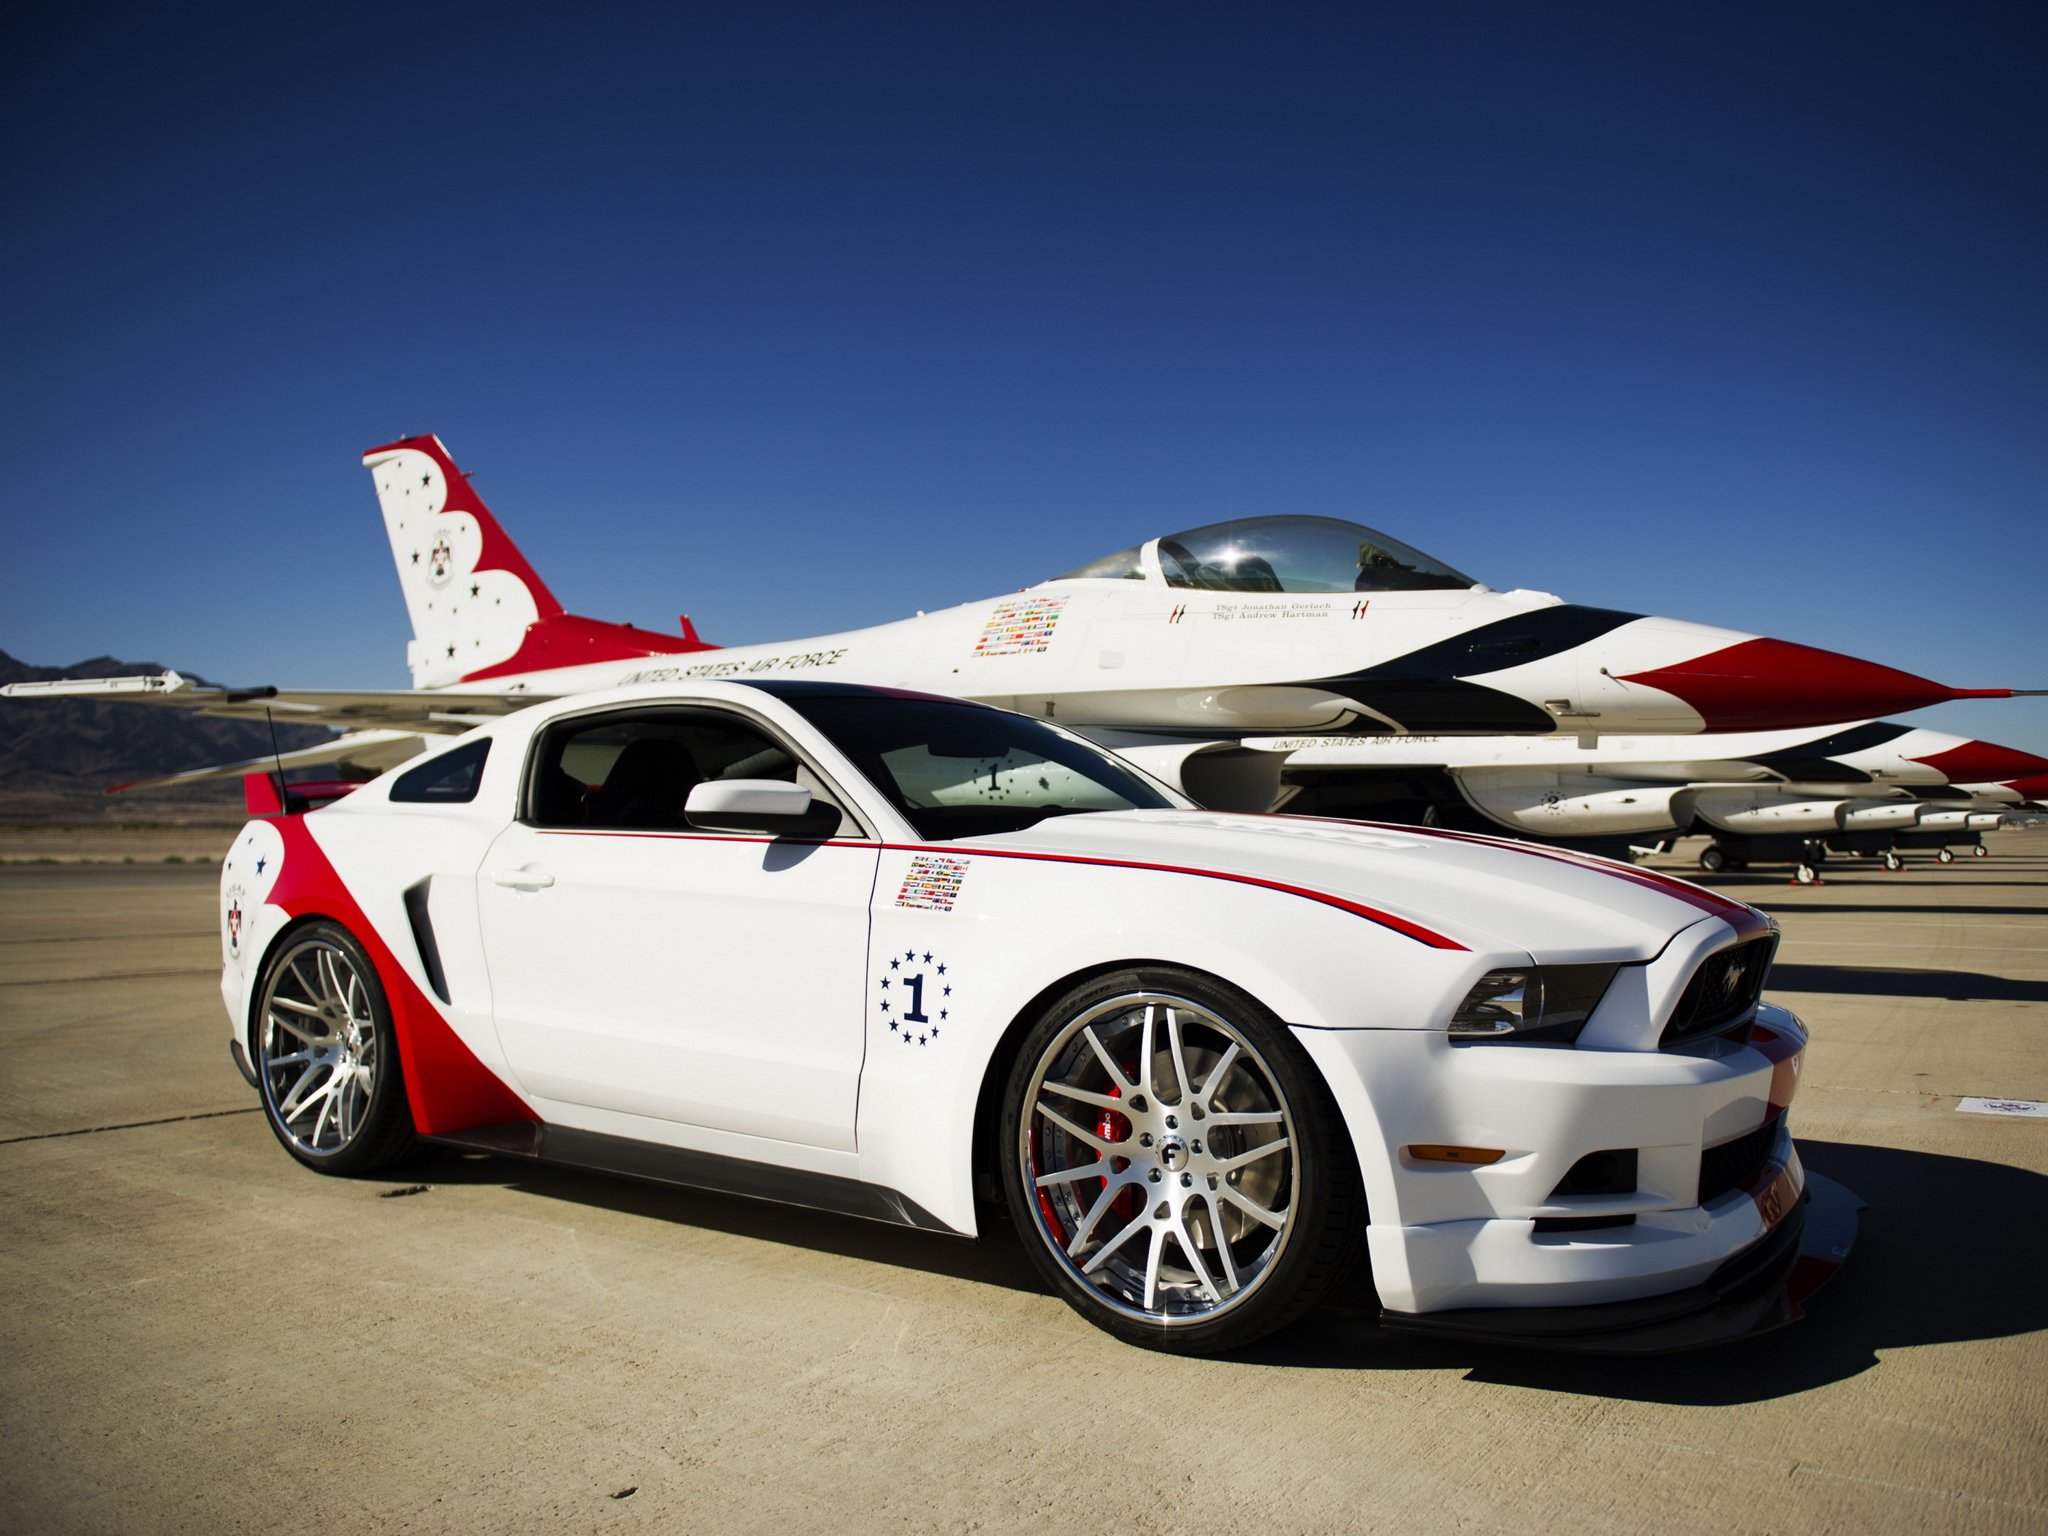 2014 ford mustang g t usa air force thunderbirds muscle tuning hot rod rods military jet g wallpaper 2048x1536 461801 wallpaperup